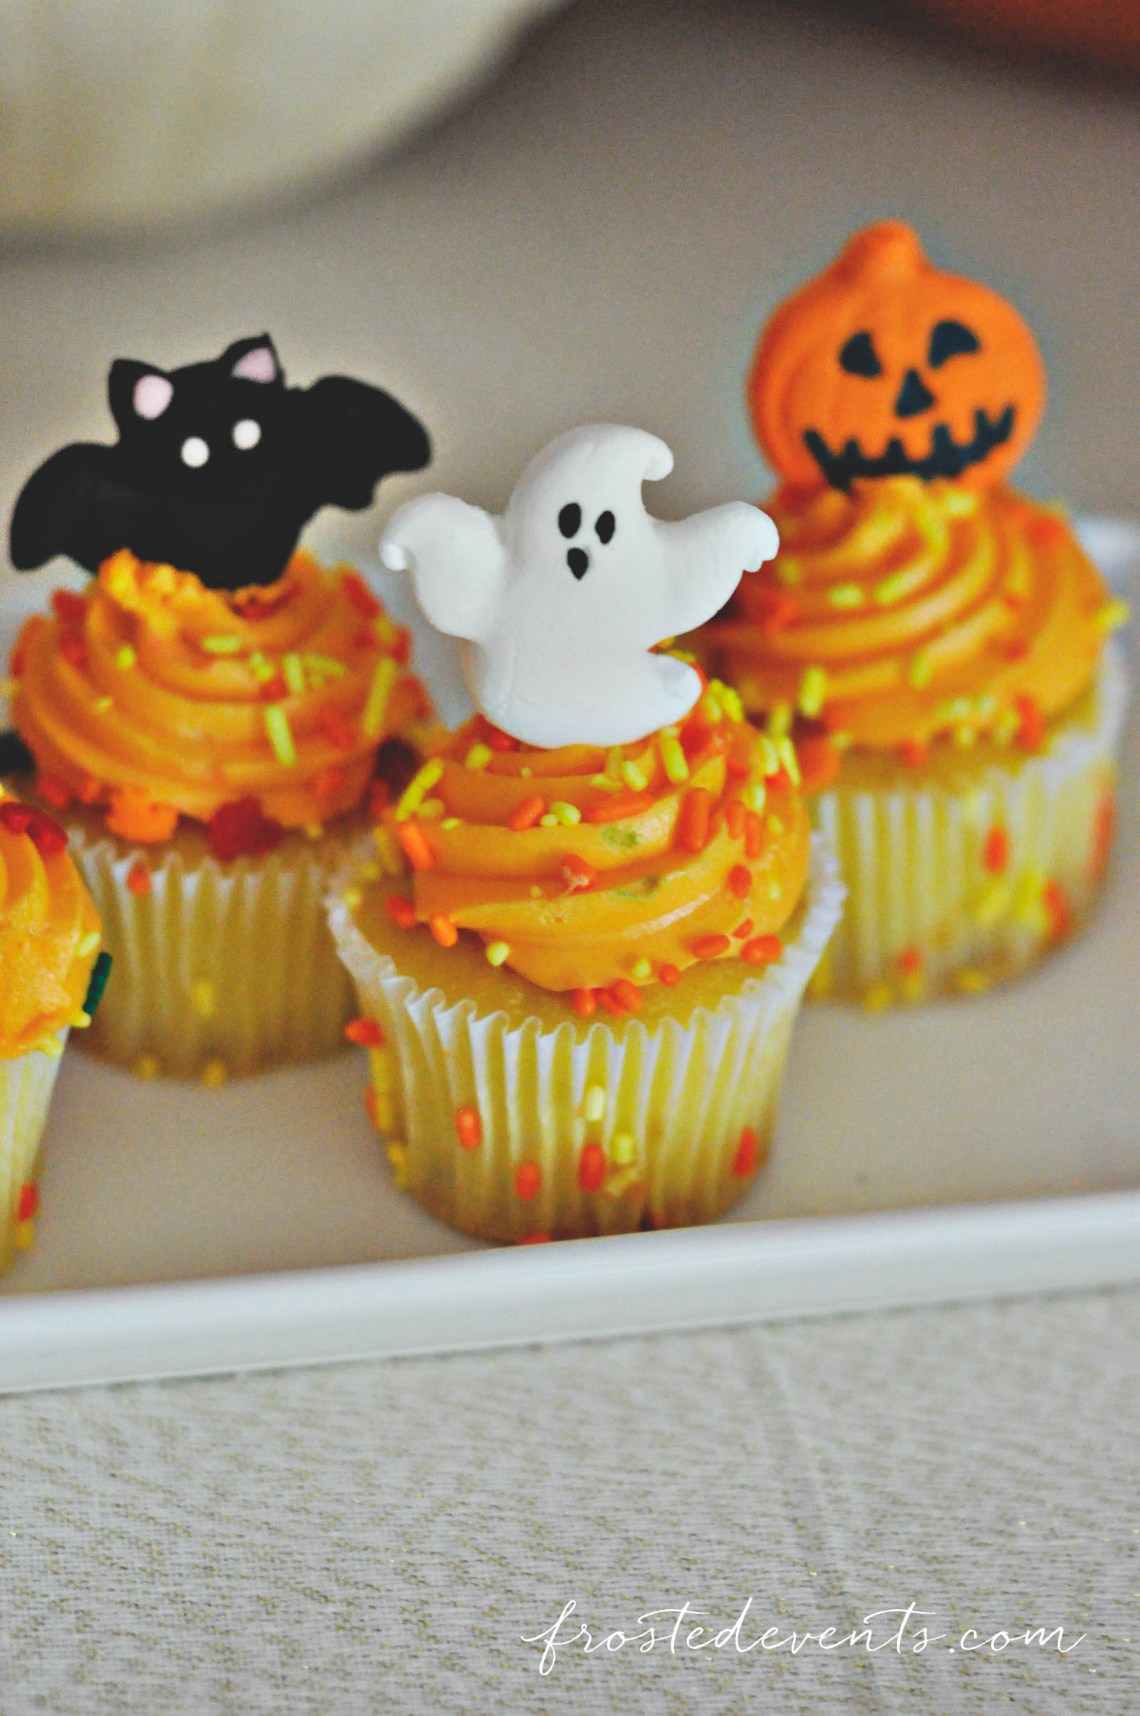 Halloween Party for Kids - Pumpkin Party ideas, halloween party treats, halloween desserts and more fun Halloween ideas via mom blogger Misty Nelson @frostedevents Halloween cupcakes